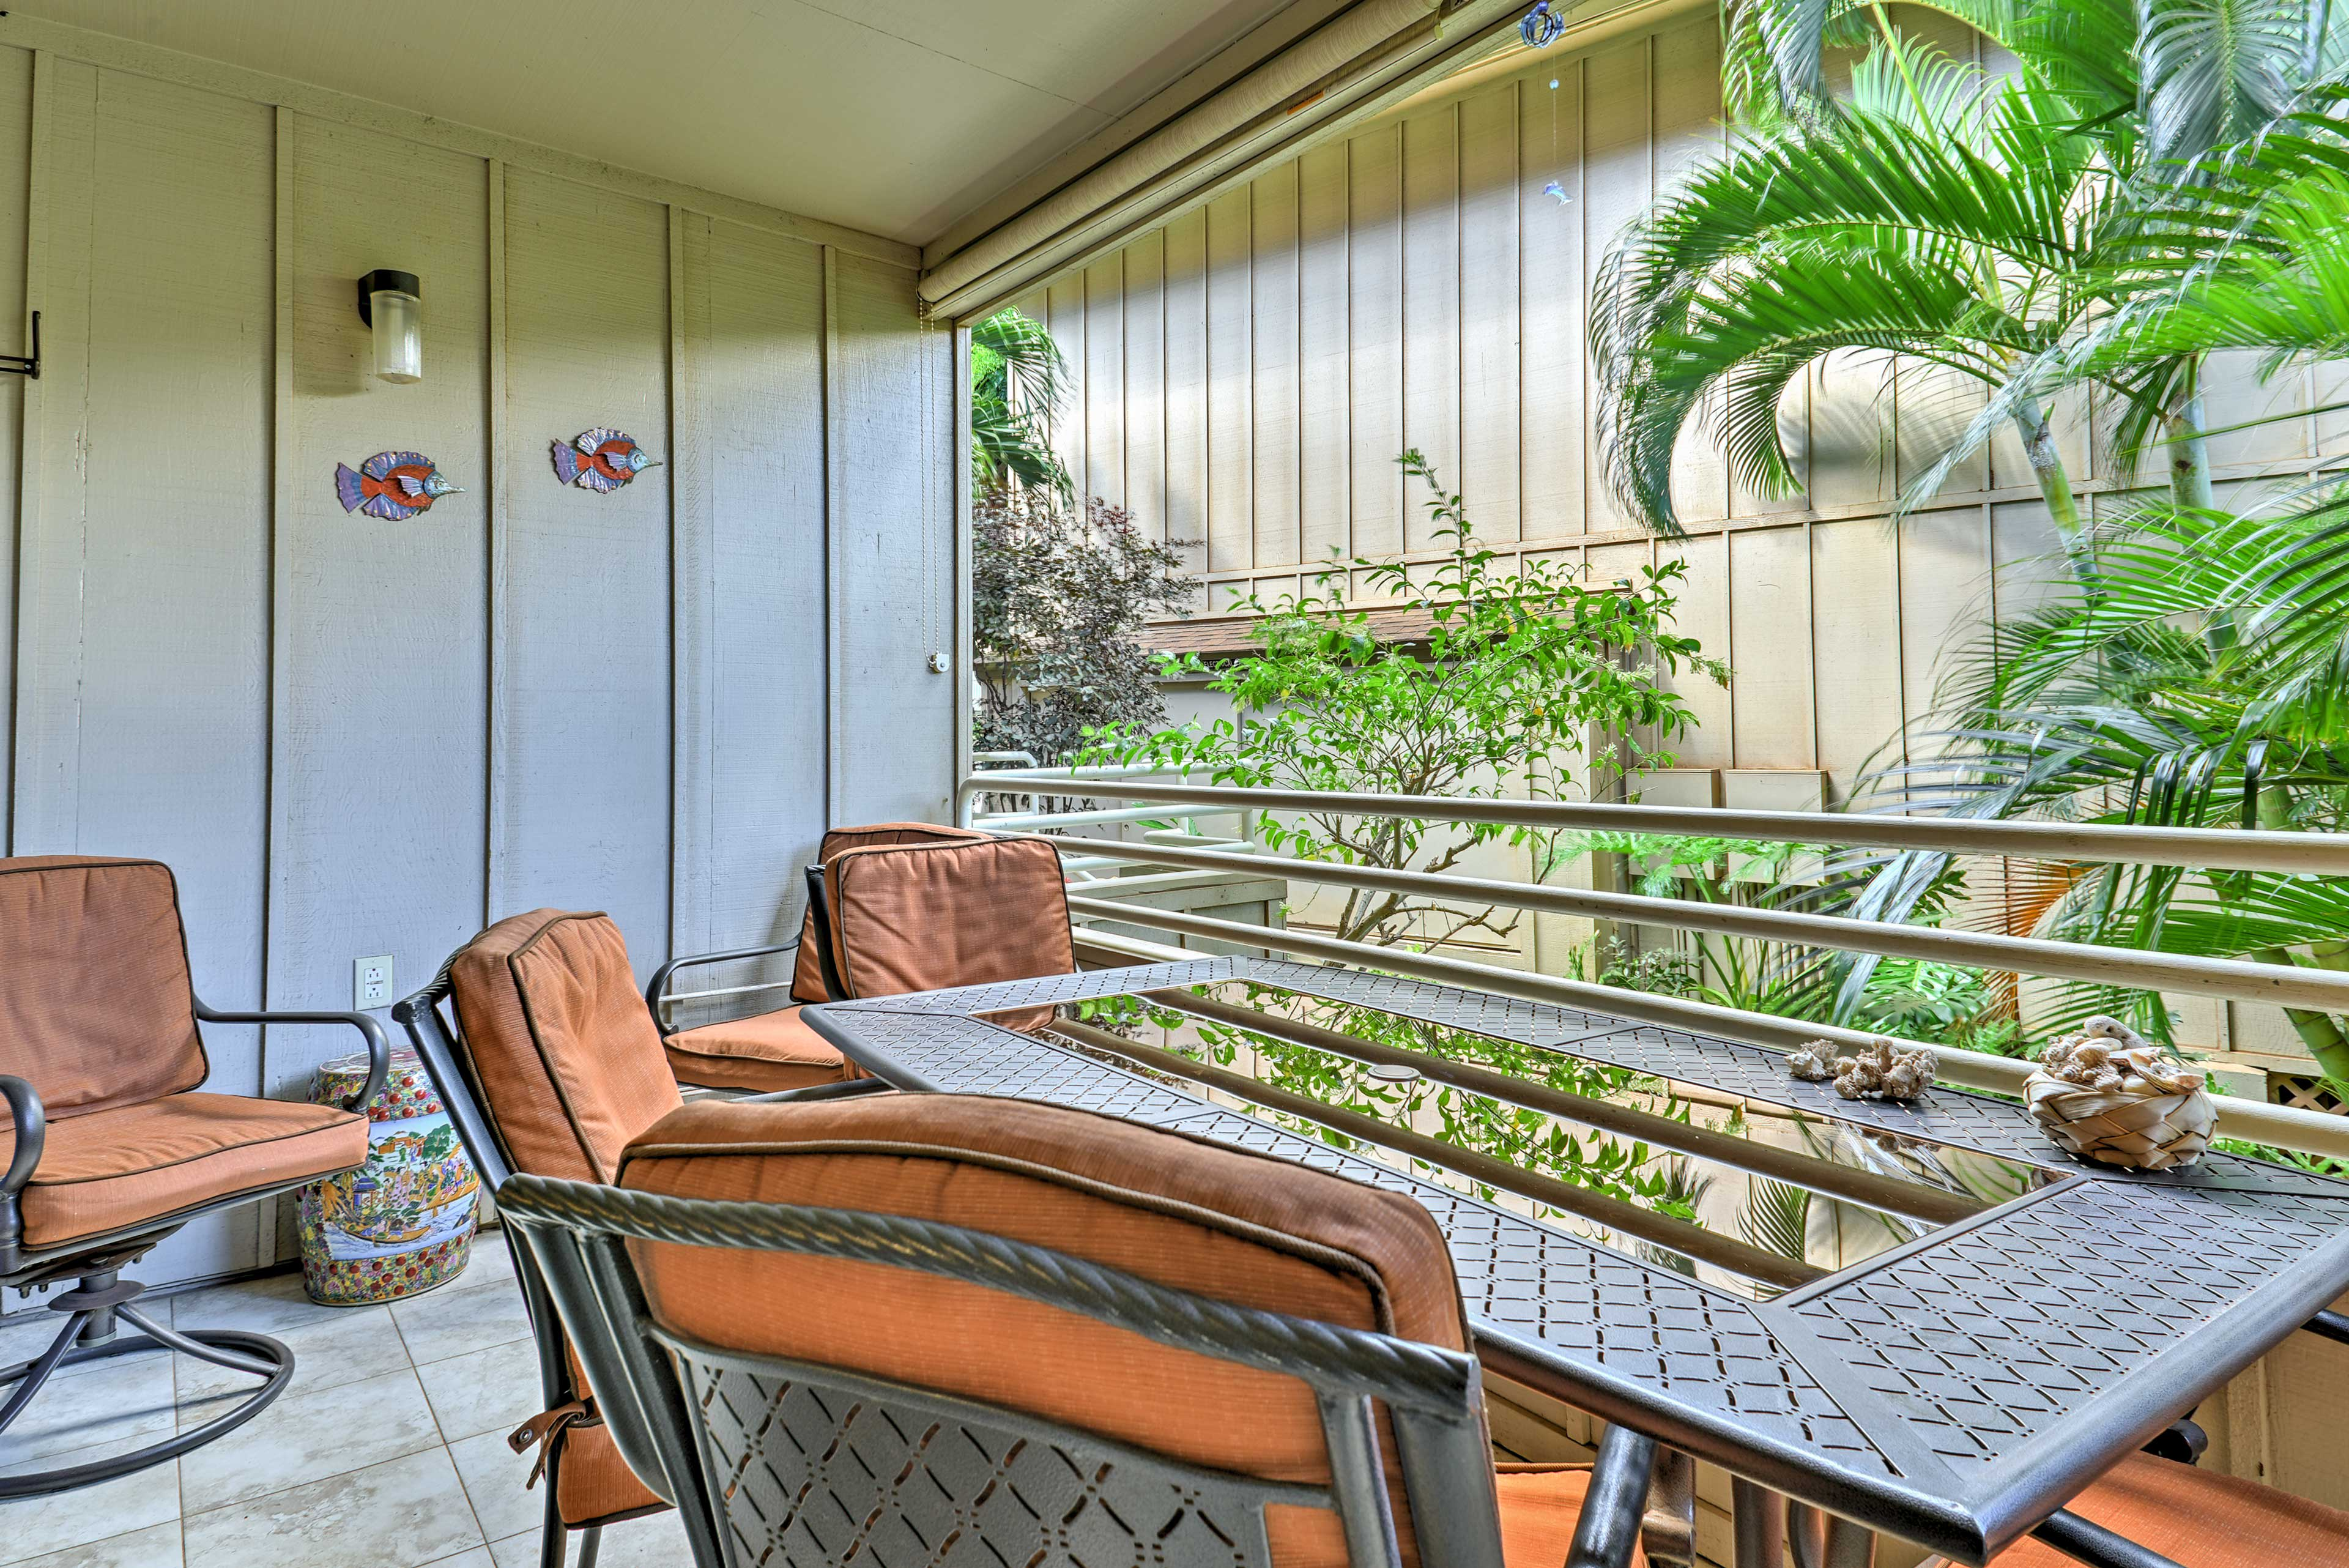 Sit outside to enjoy a meal or play a game of cards with your travel companions!